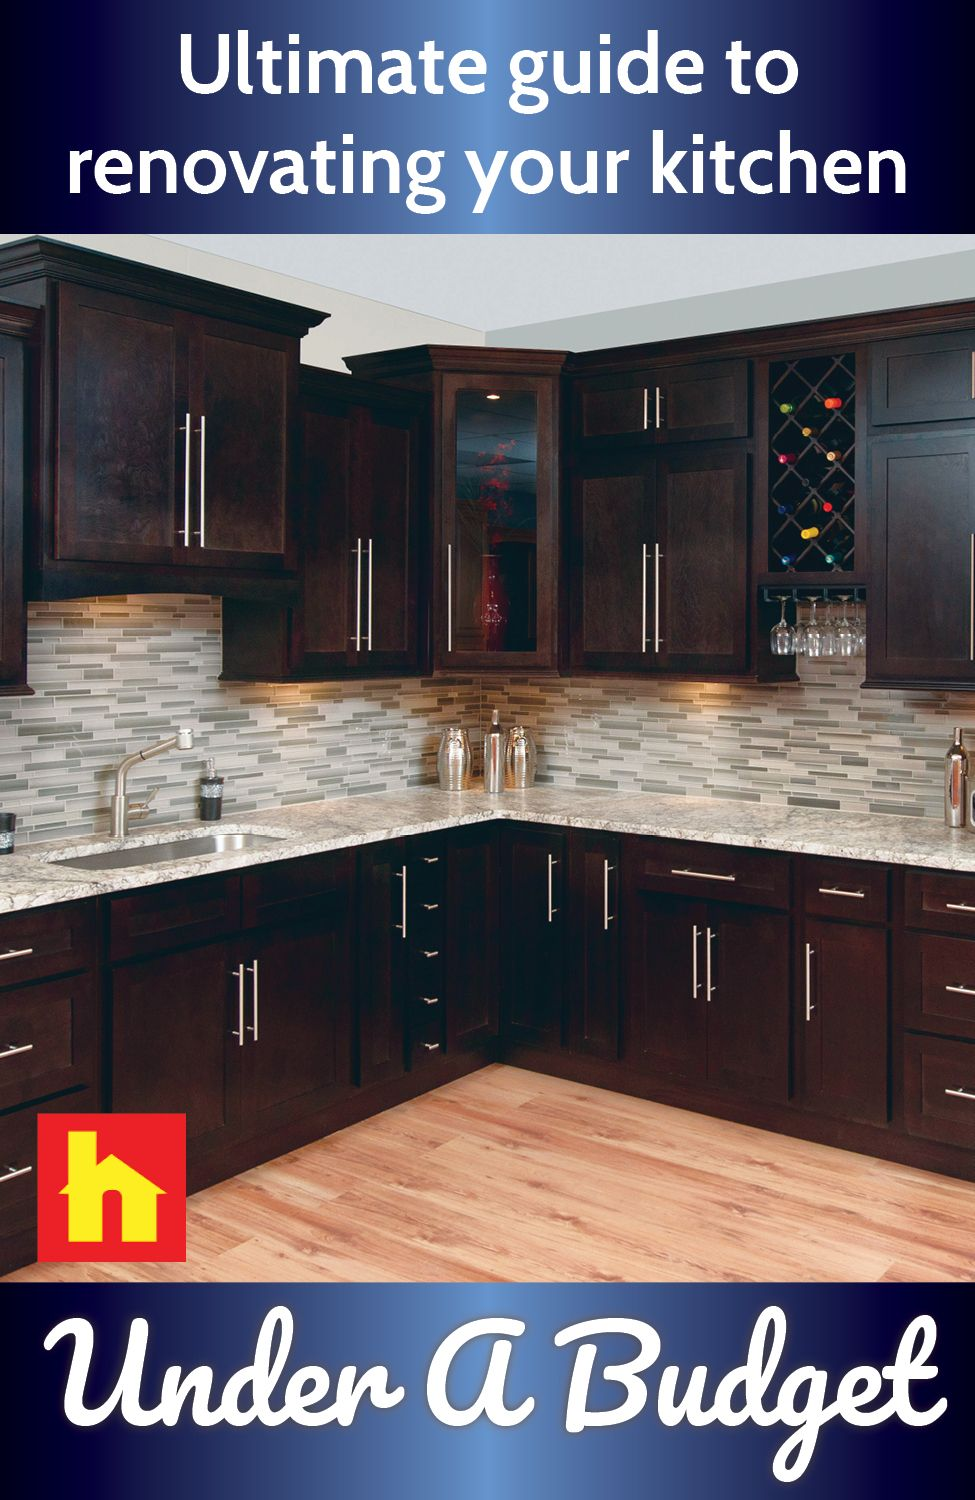 Free Ultimate Guide To Renovating Your Kitchen For Under 10 000 Ebook Limited Budget Create Yo Kitchen Remodel Sears Kitchen Remodel Budget Kitchen Makeover